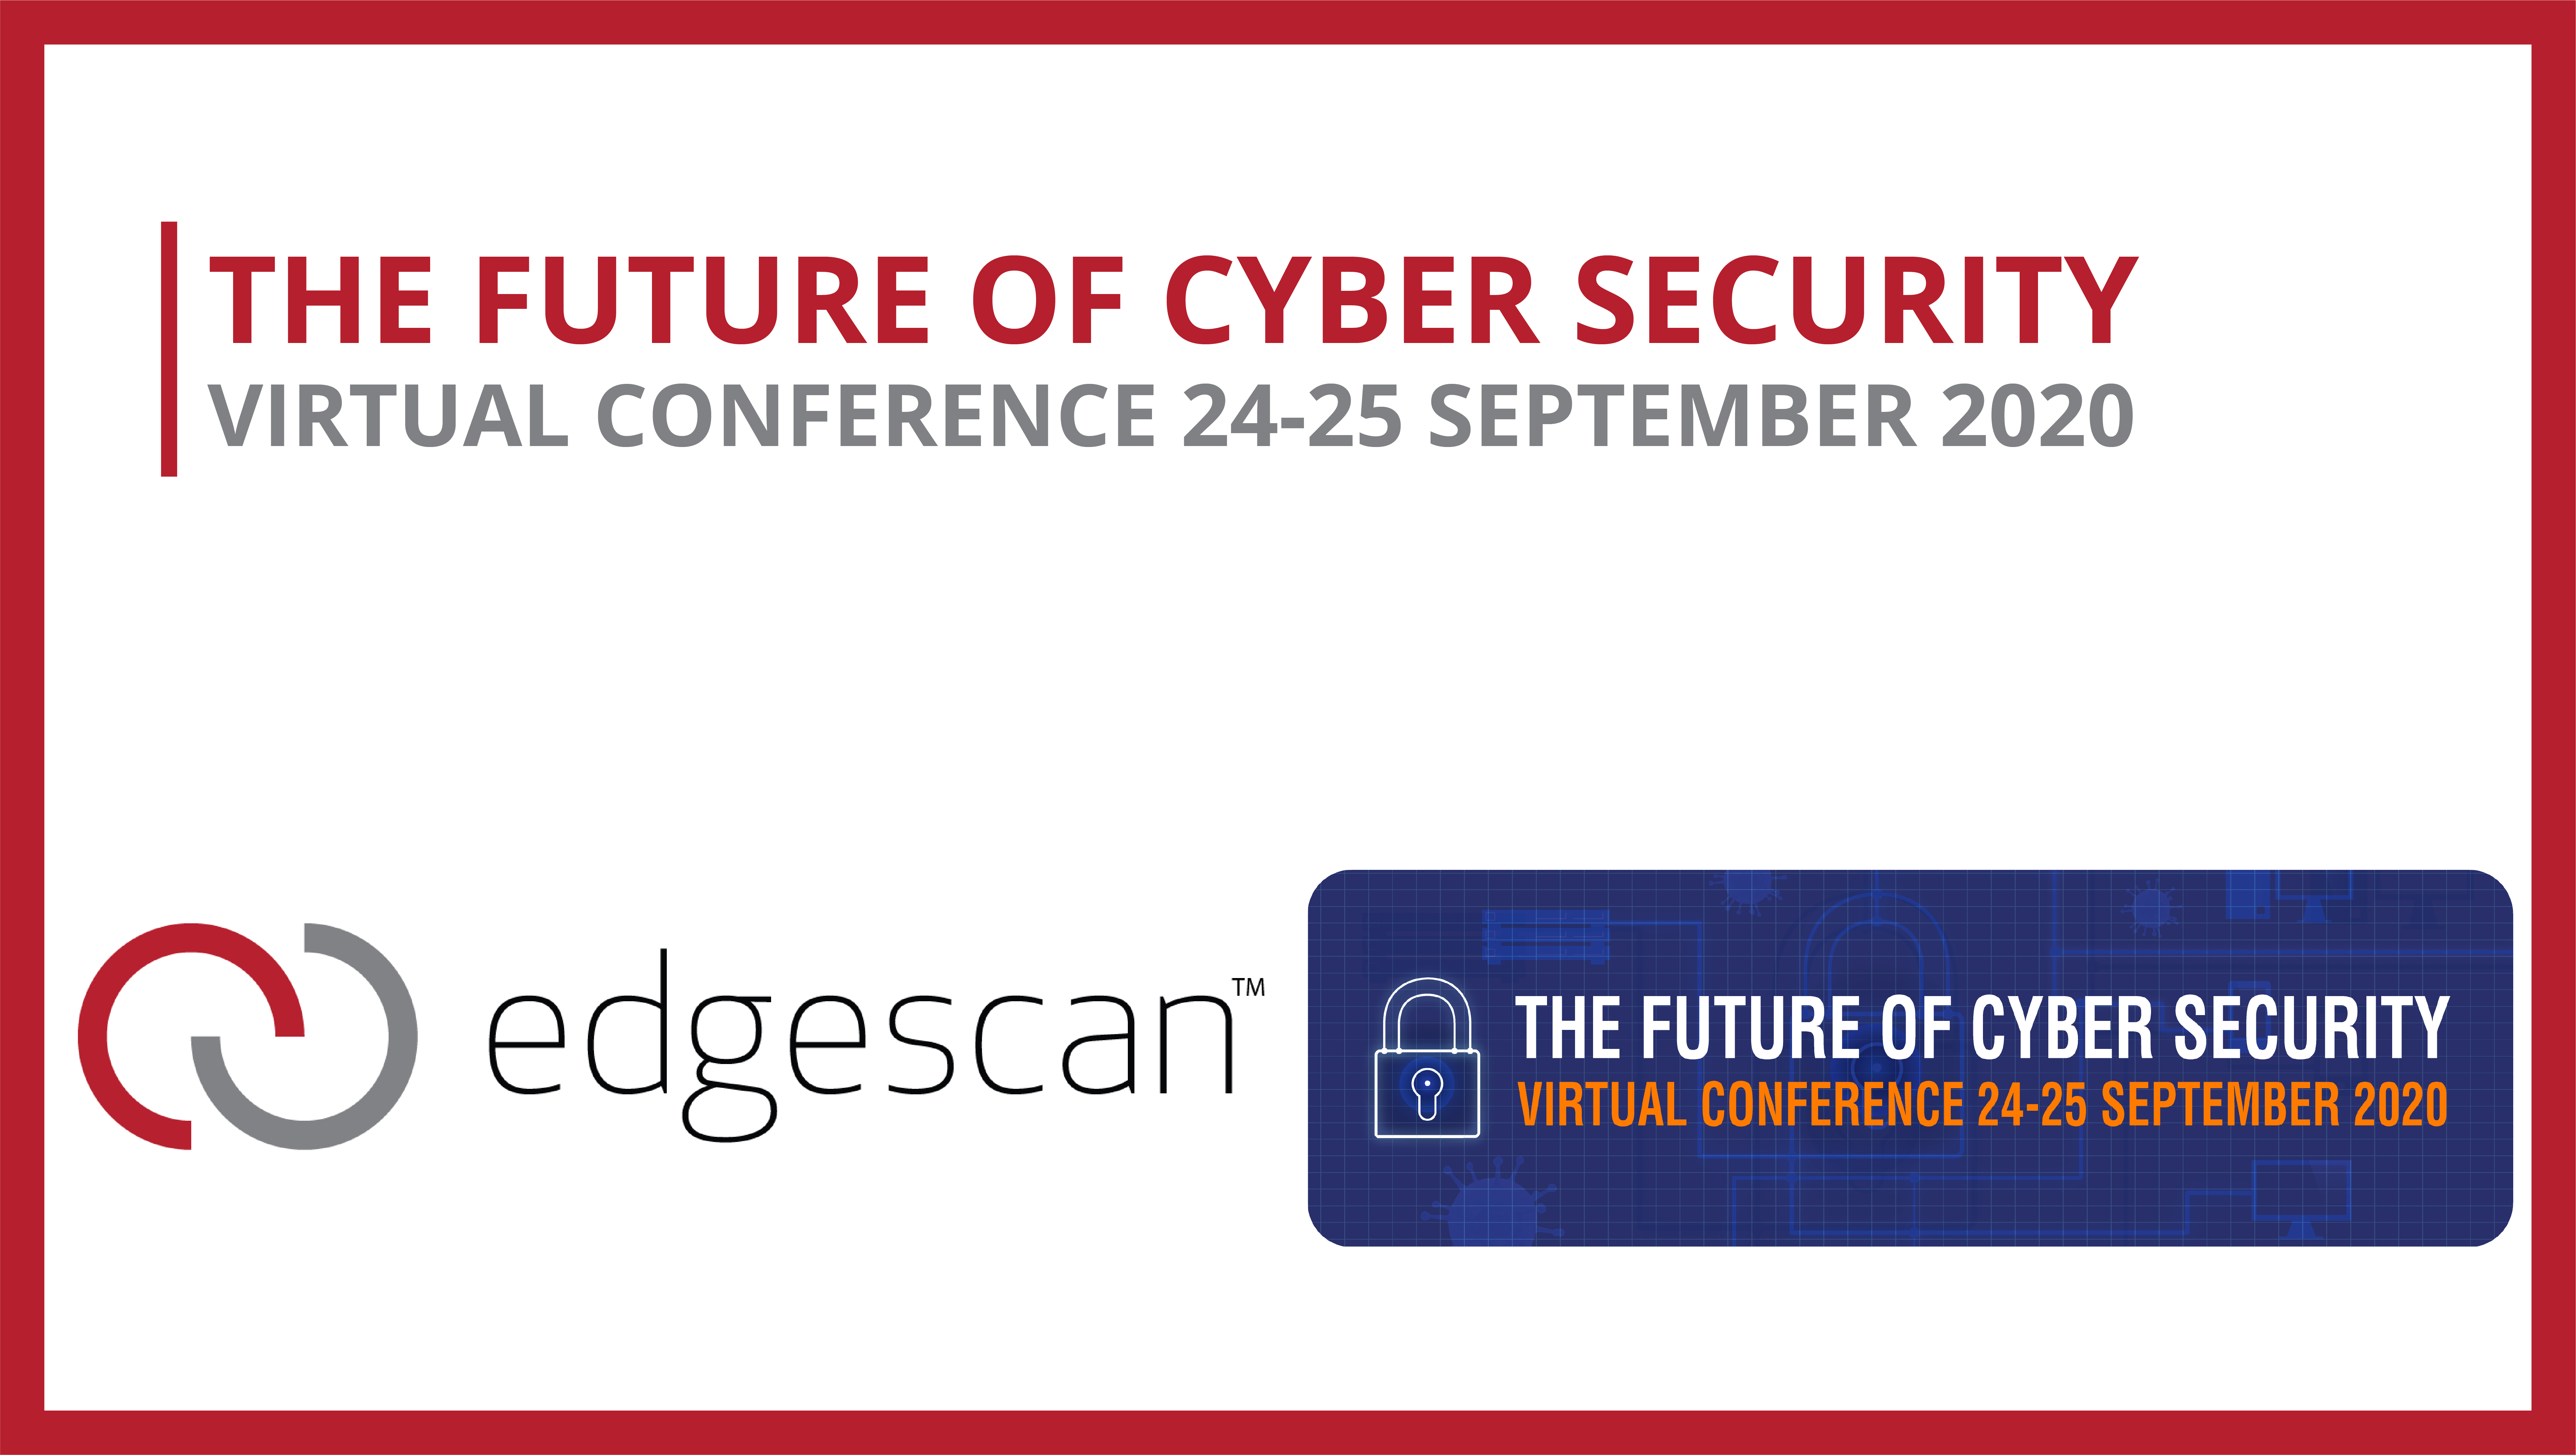 CYBERCONFERENCE